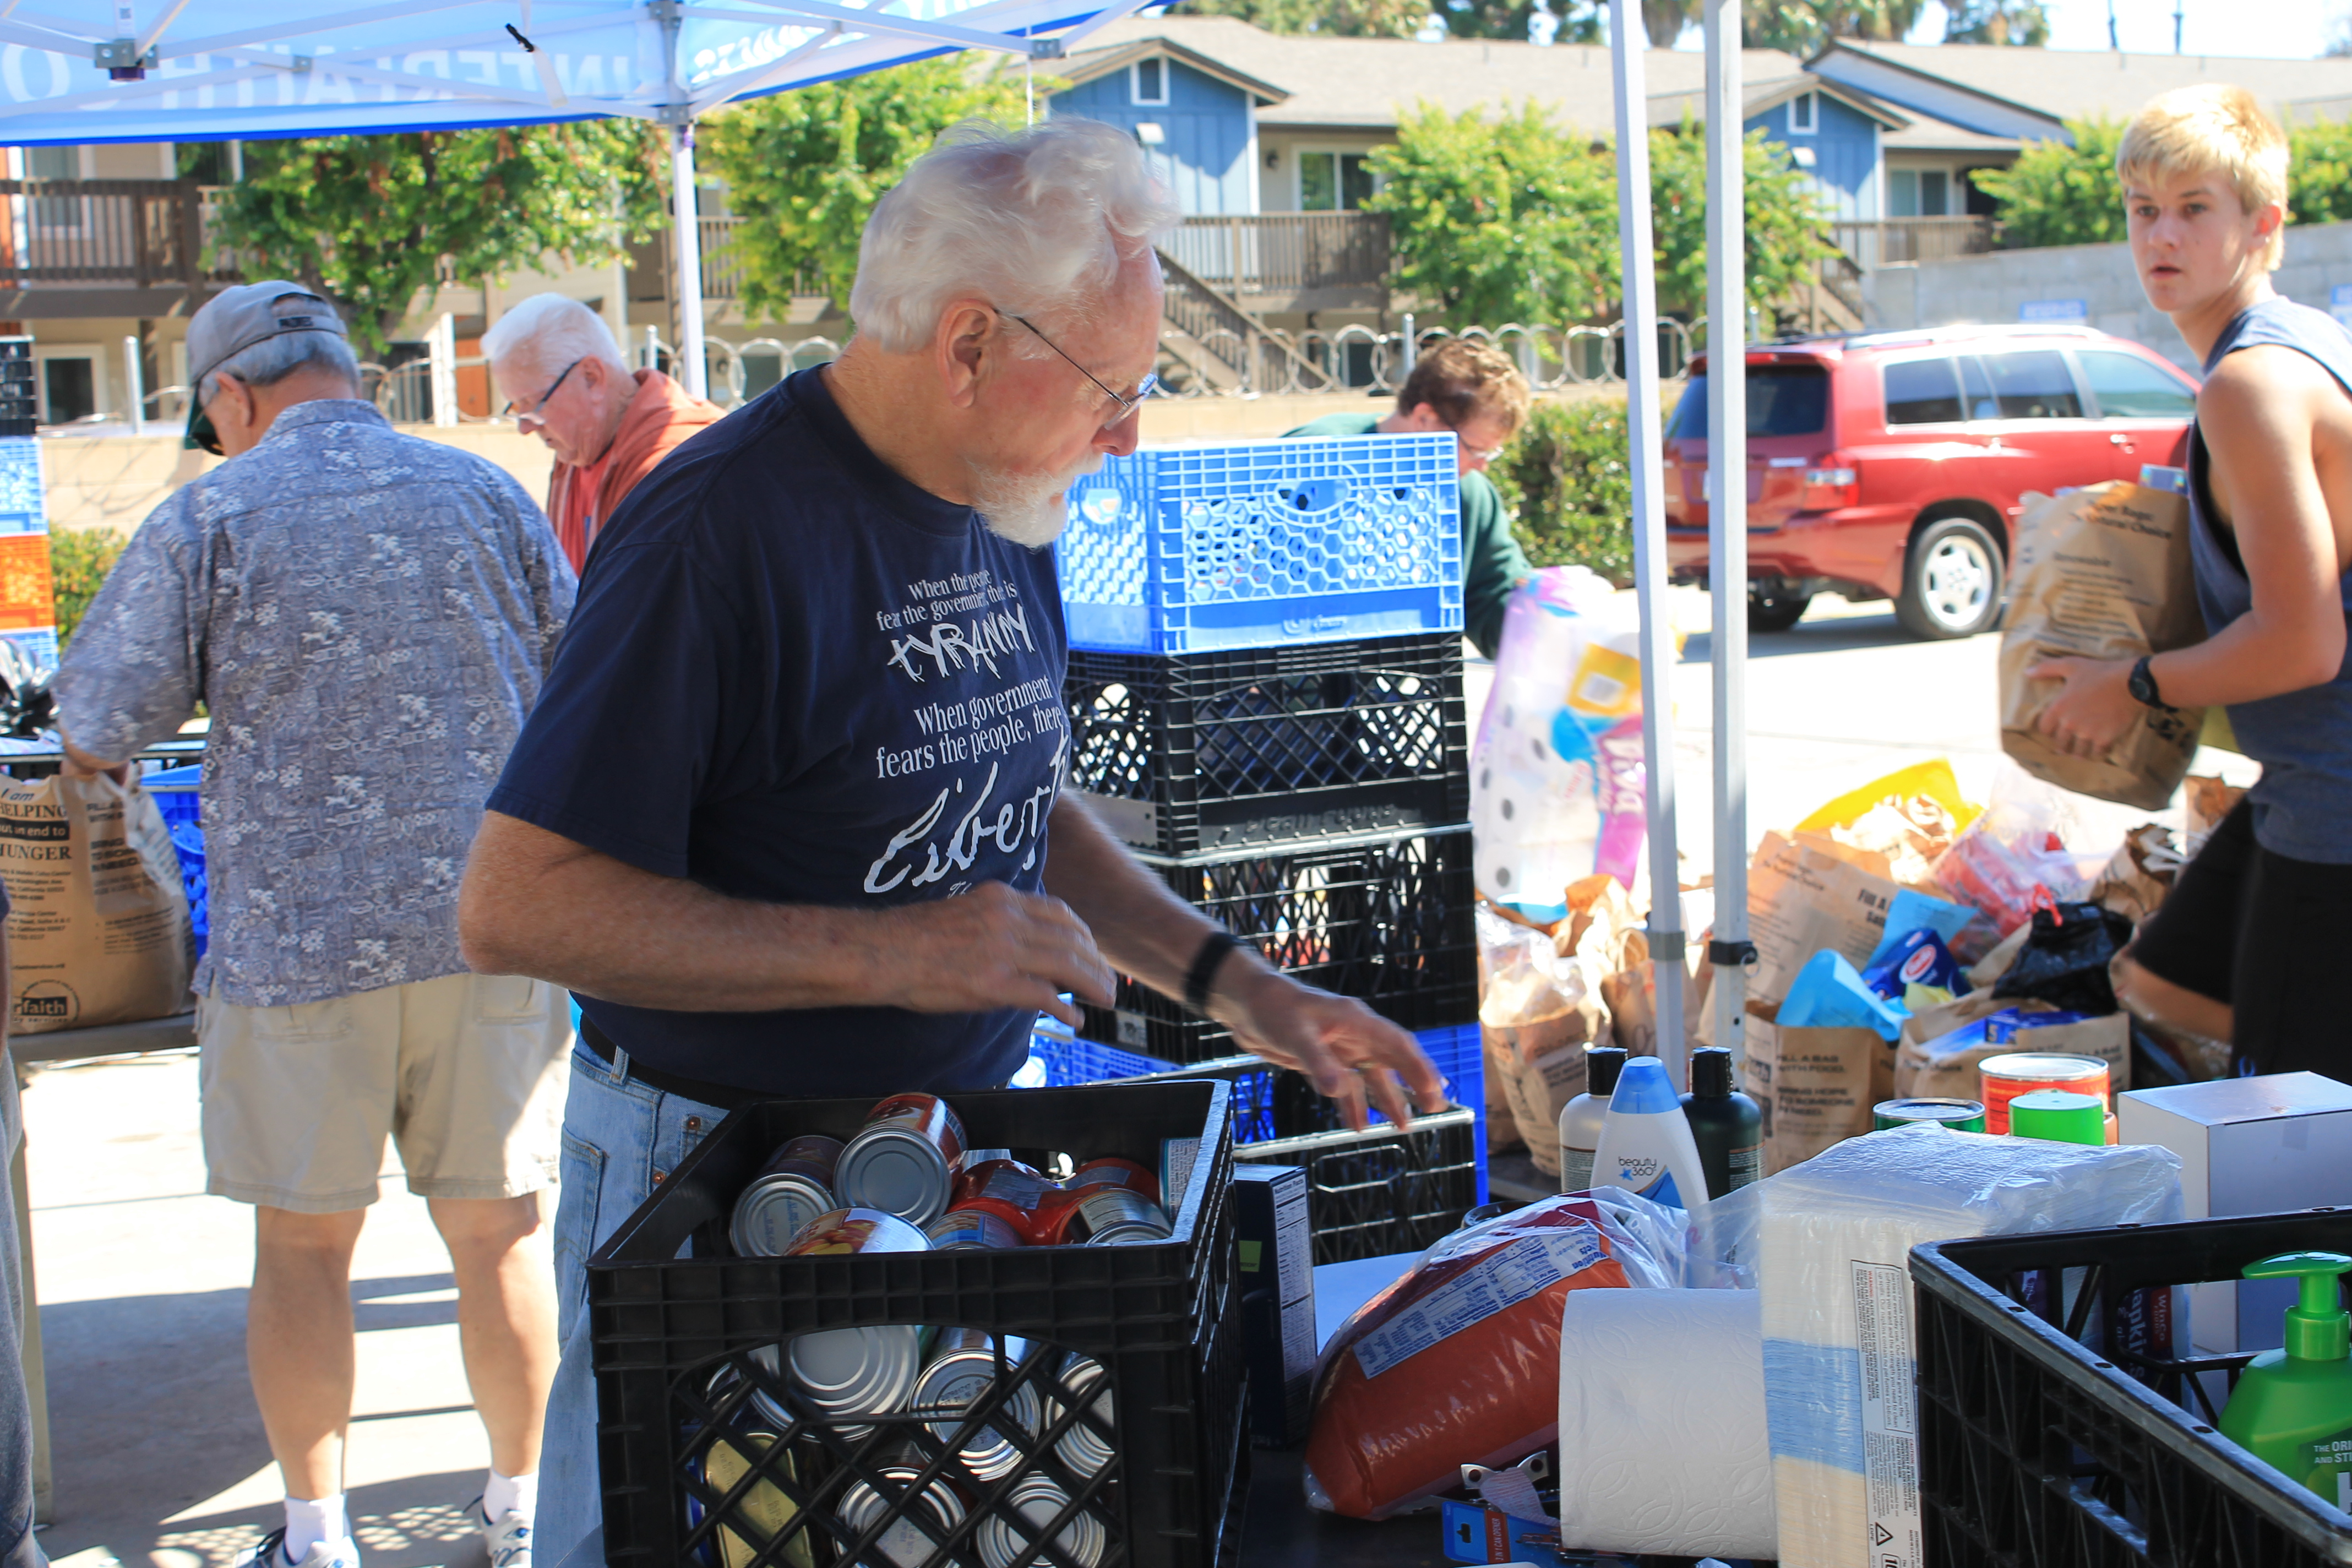 man working food donation booth